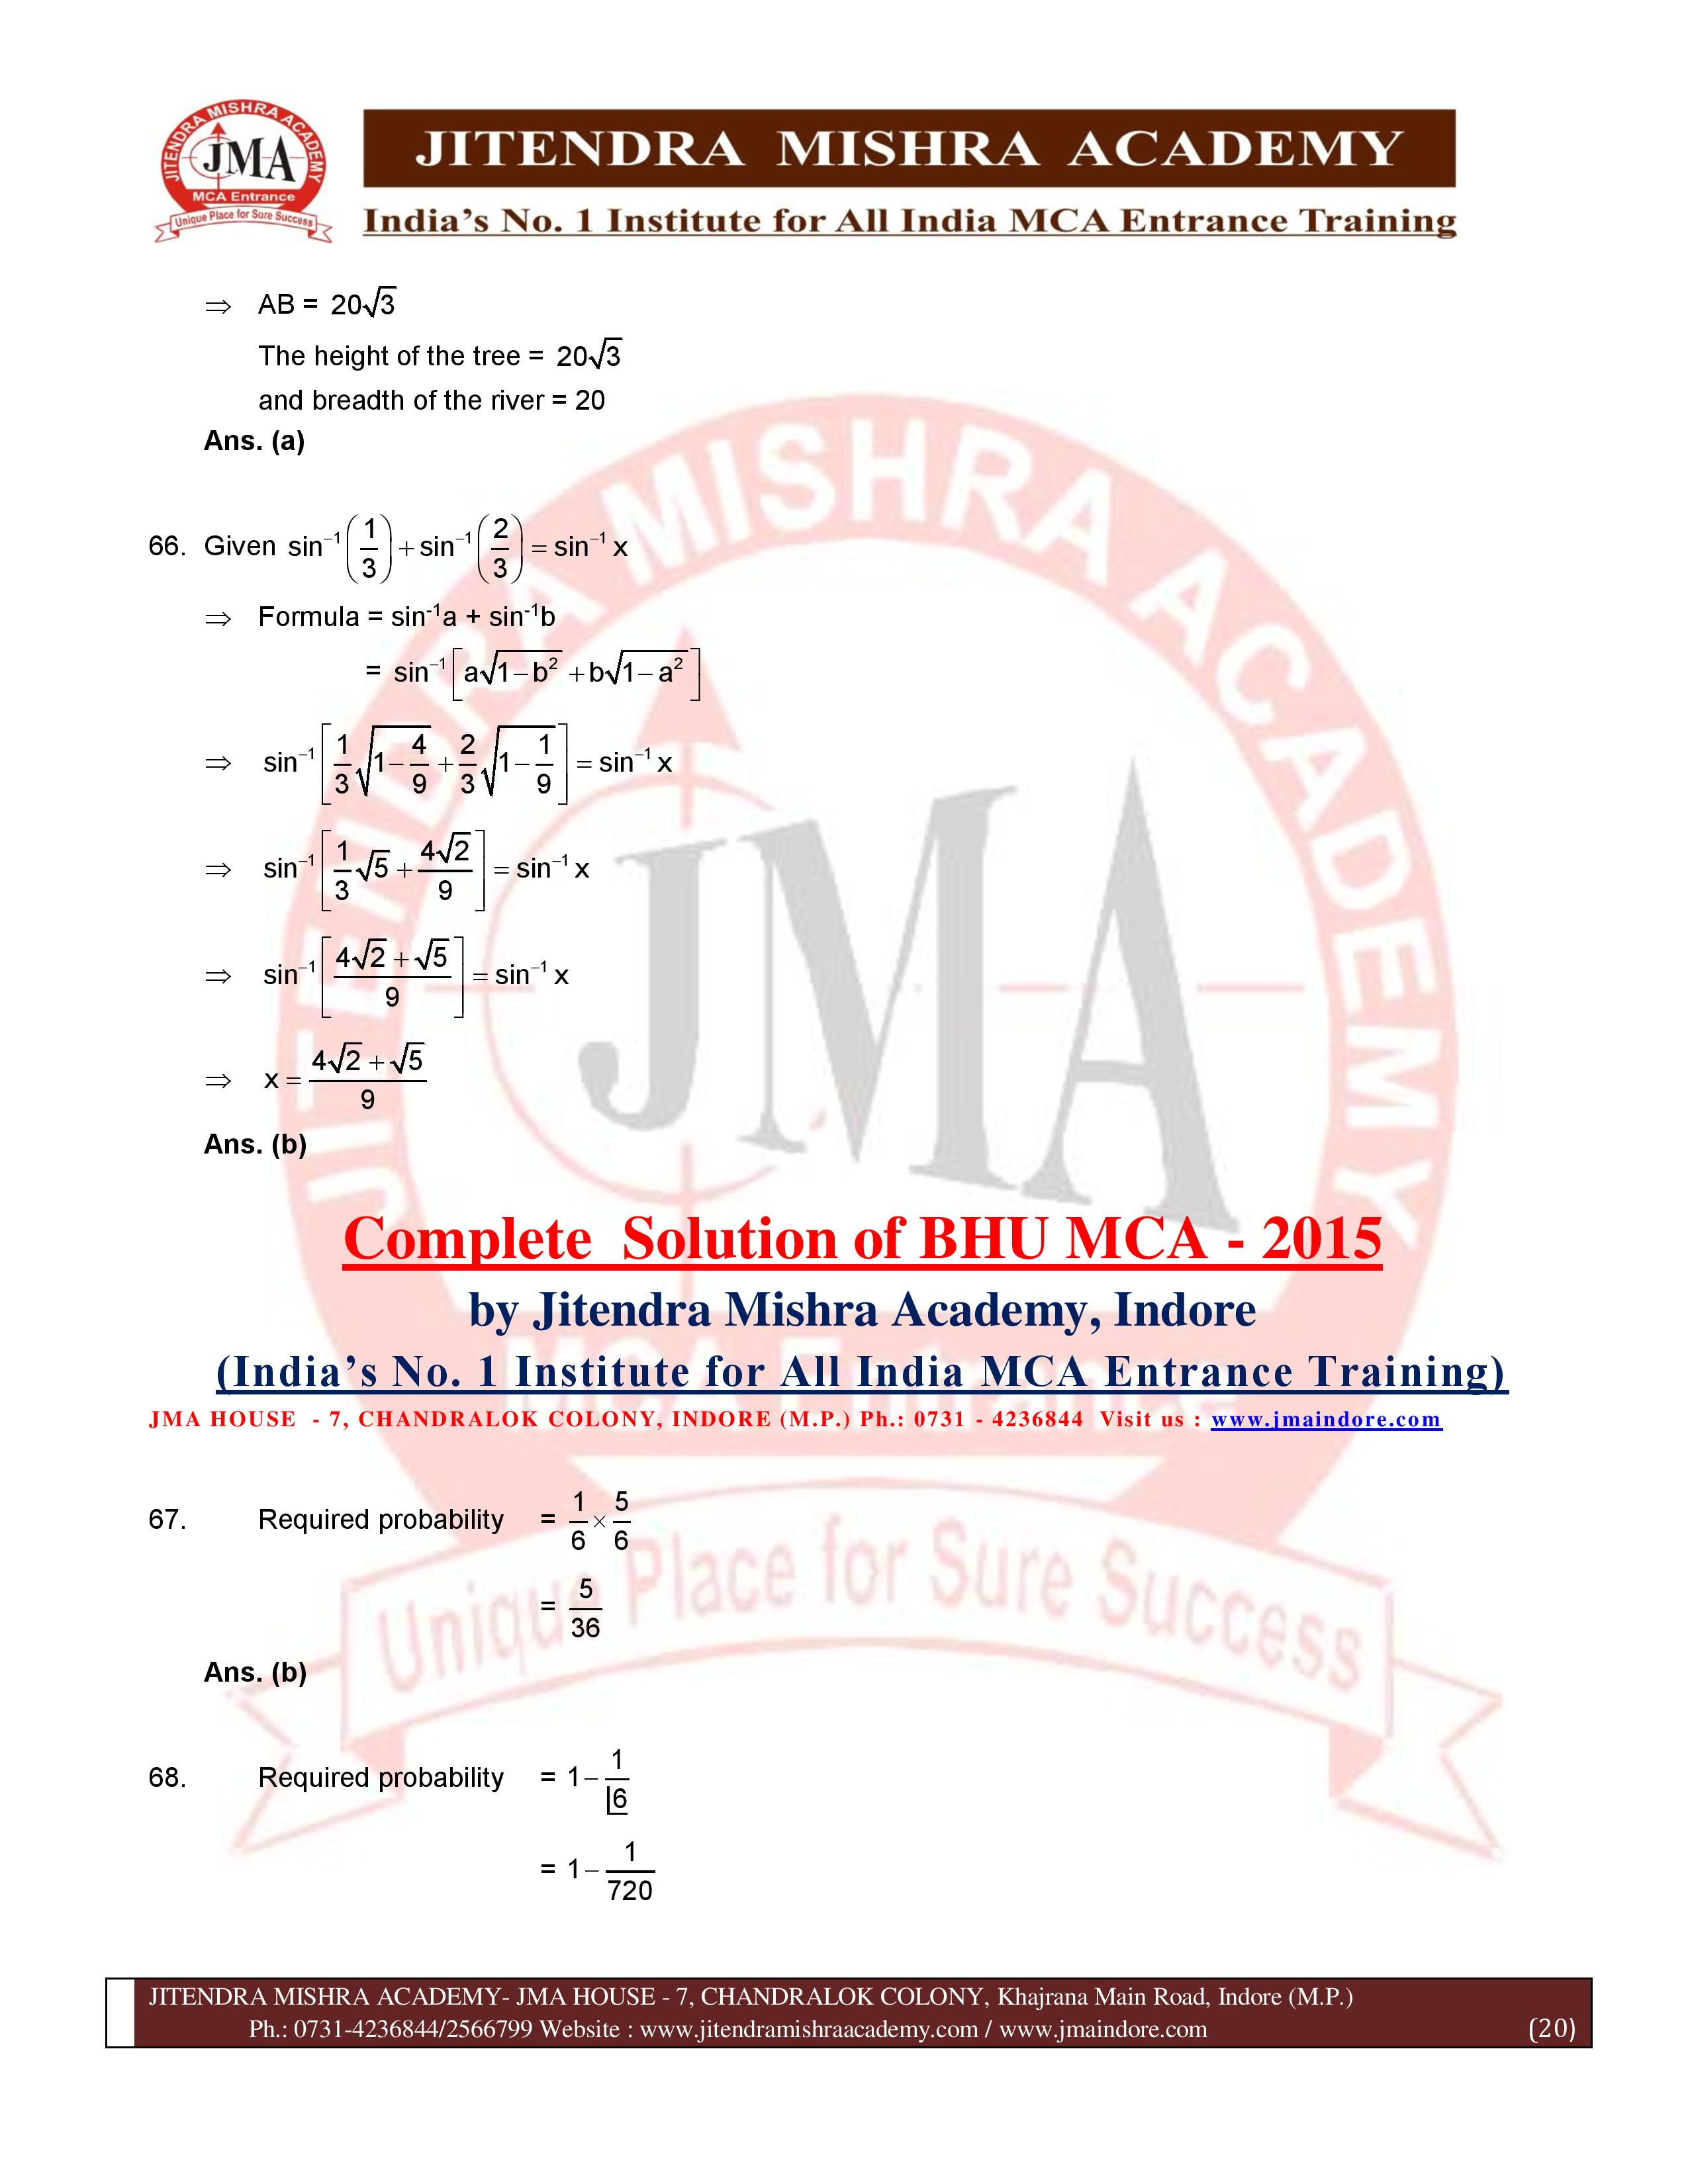 BHU 2015 SOLUTION (SET - 1) (29.06.16)-page-020